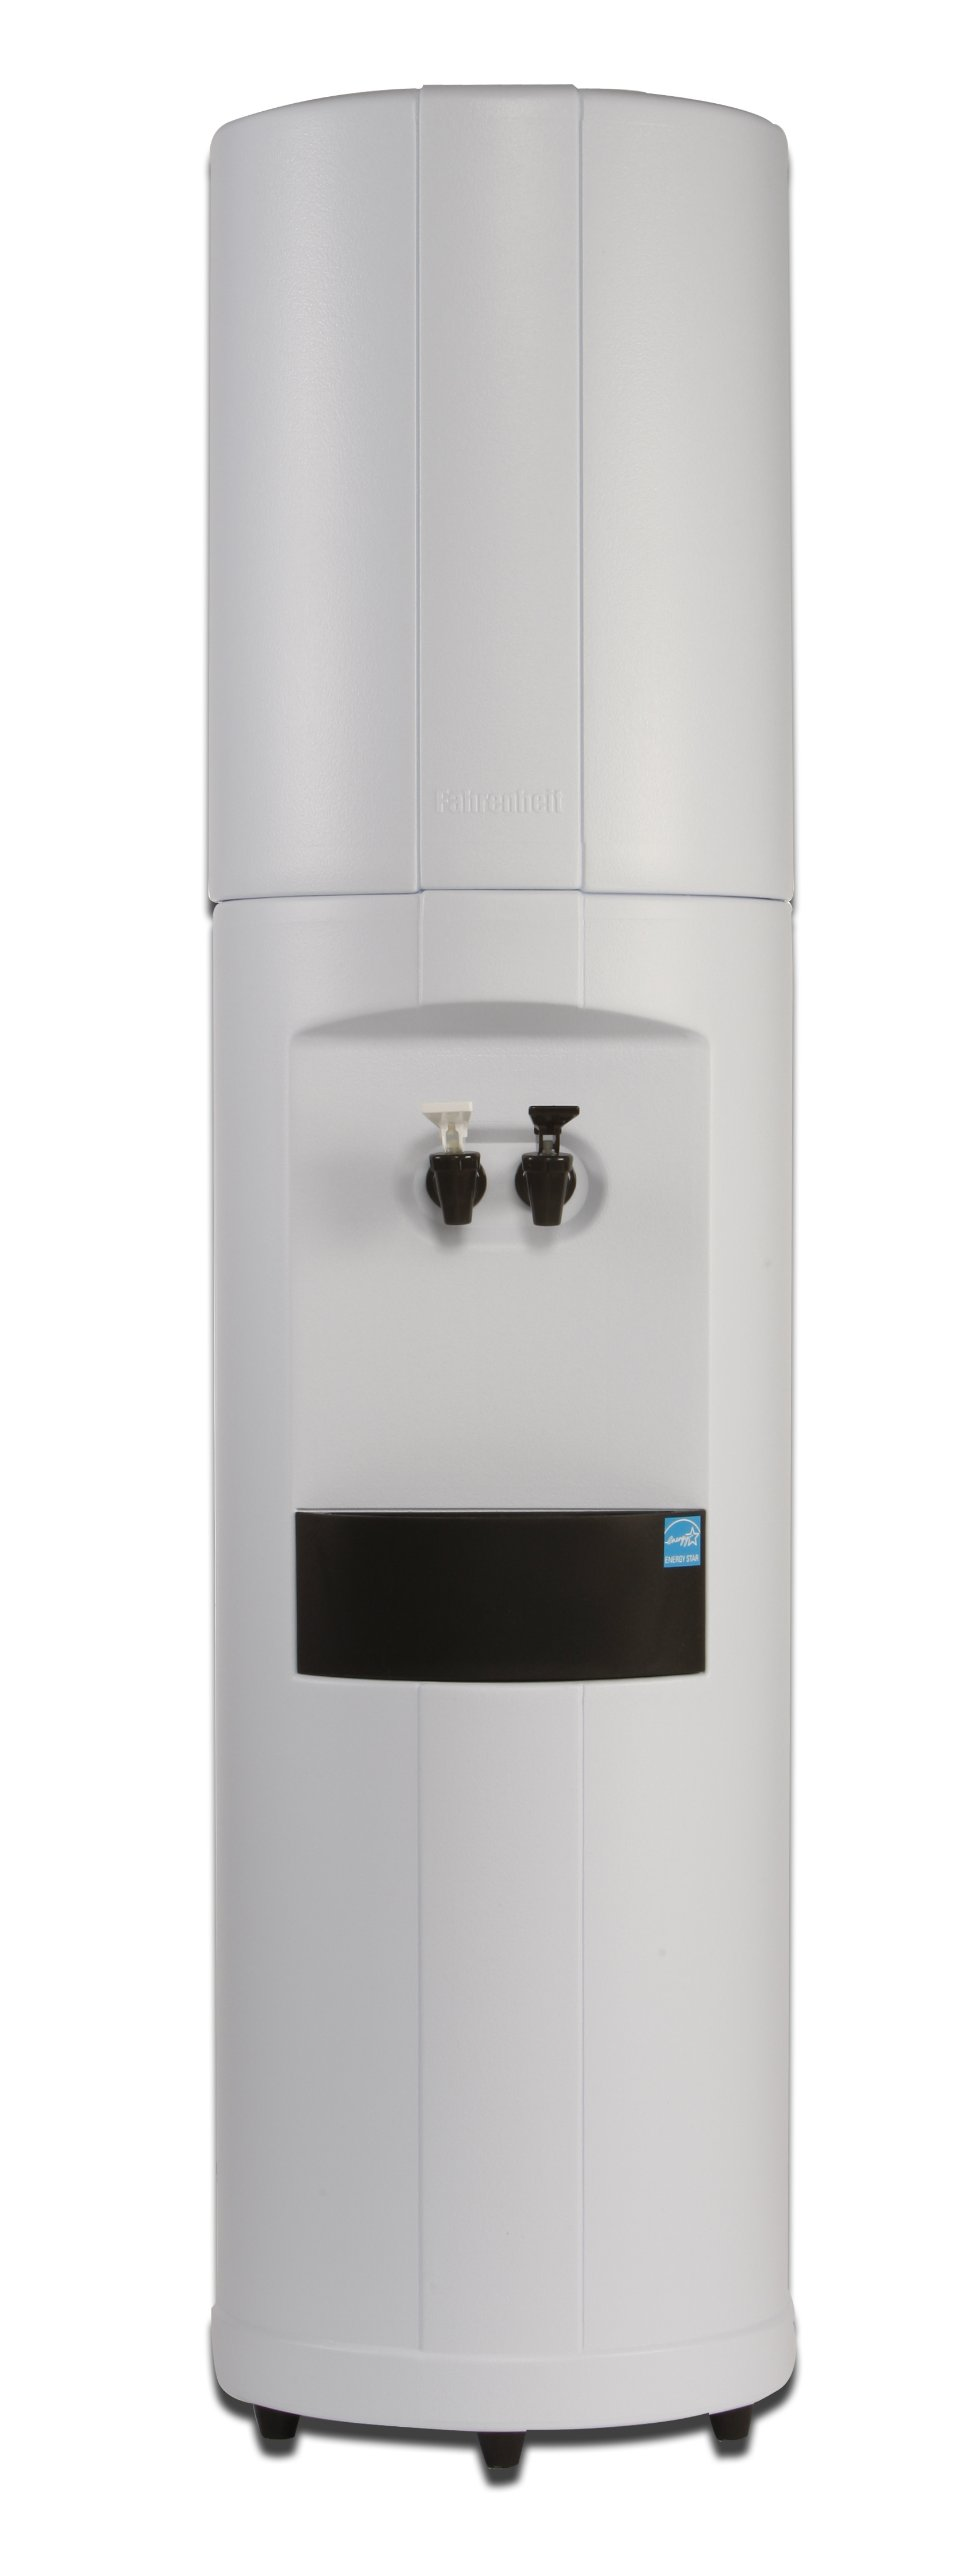 Fahrenheit Water Cooler - RoomTemp/Cold - White Cabinet with Black Trim - Made in North America - 5 Year Warranty by Aquaverve Water Coolers